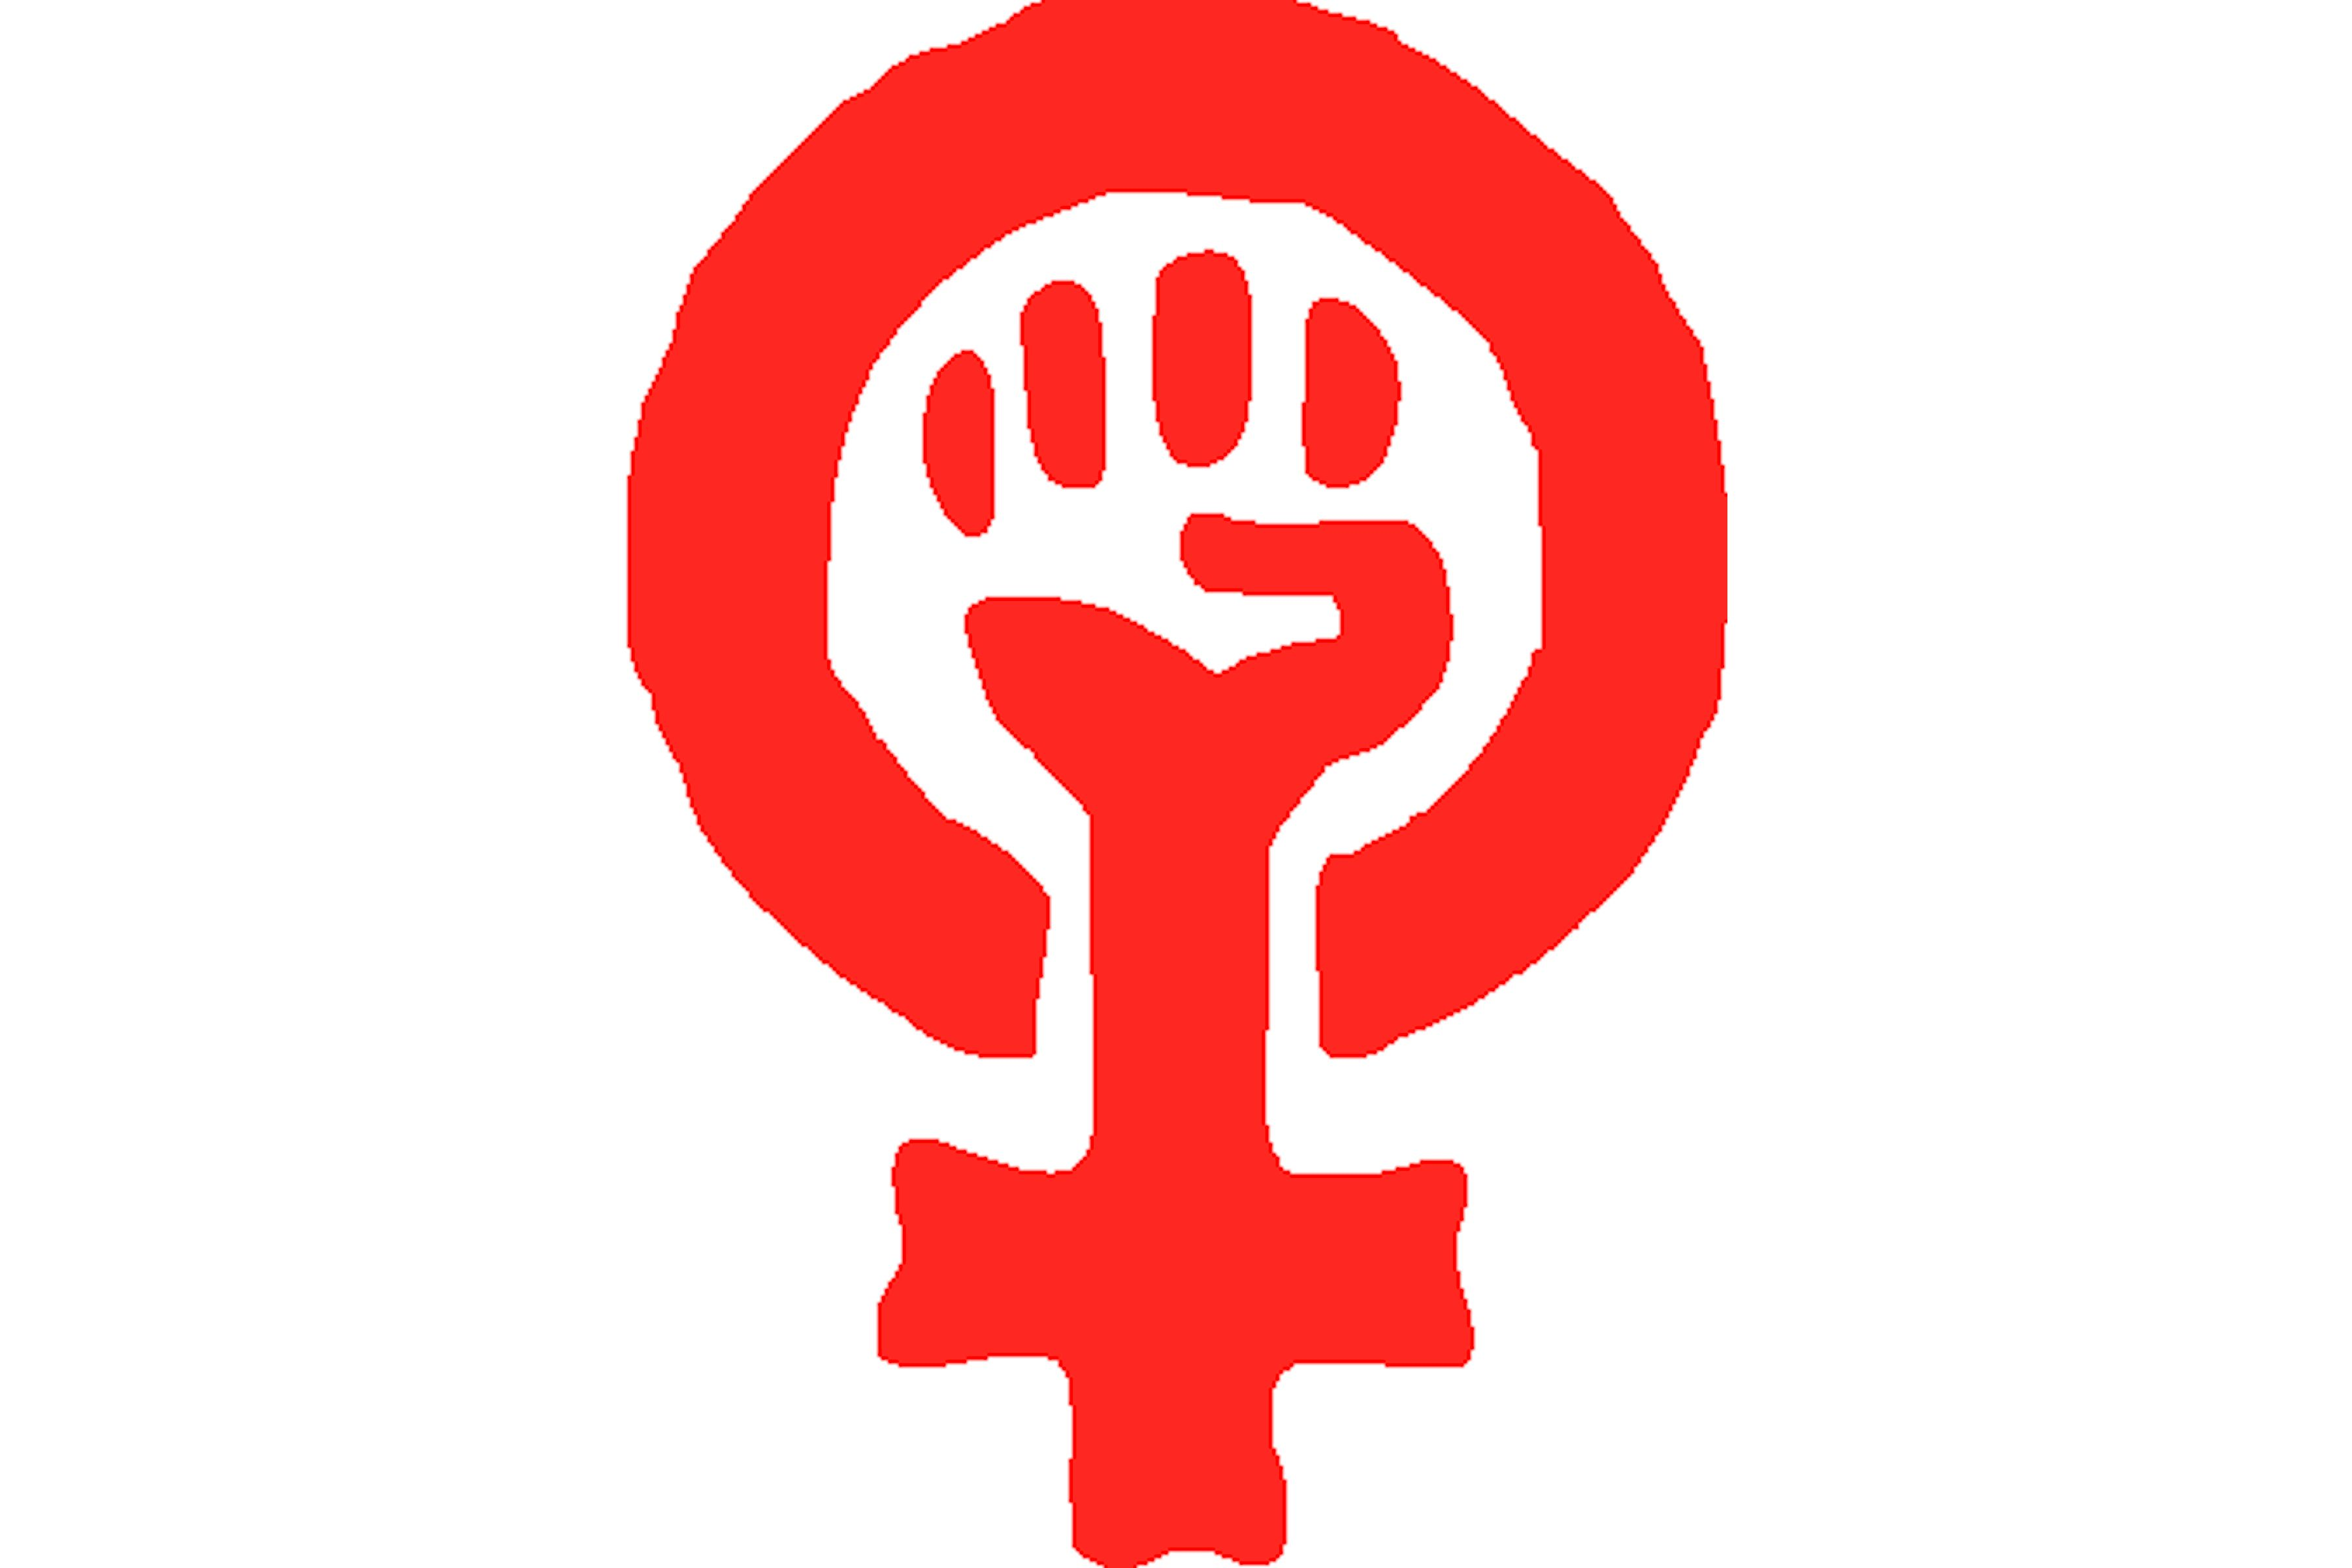 Andrea dworkin quotes radical feminism in 24 quotes biocorpaavc